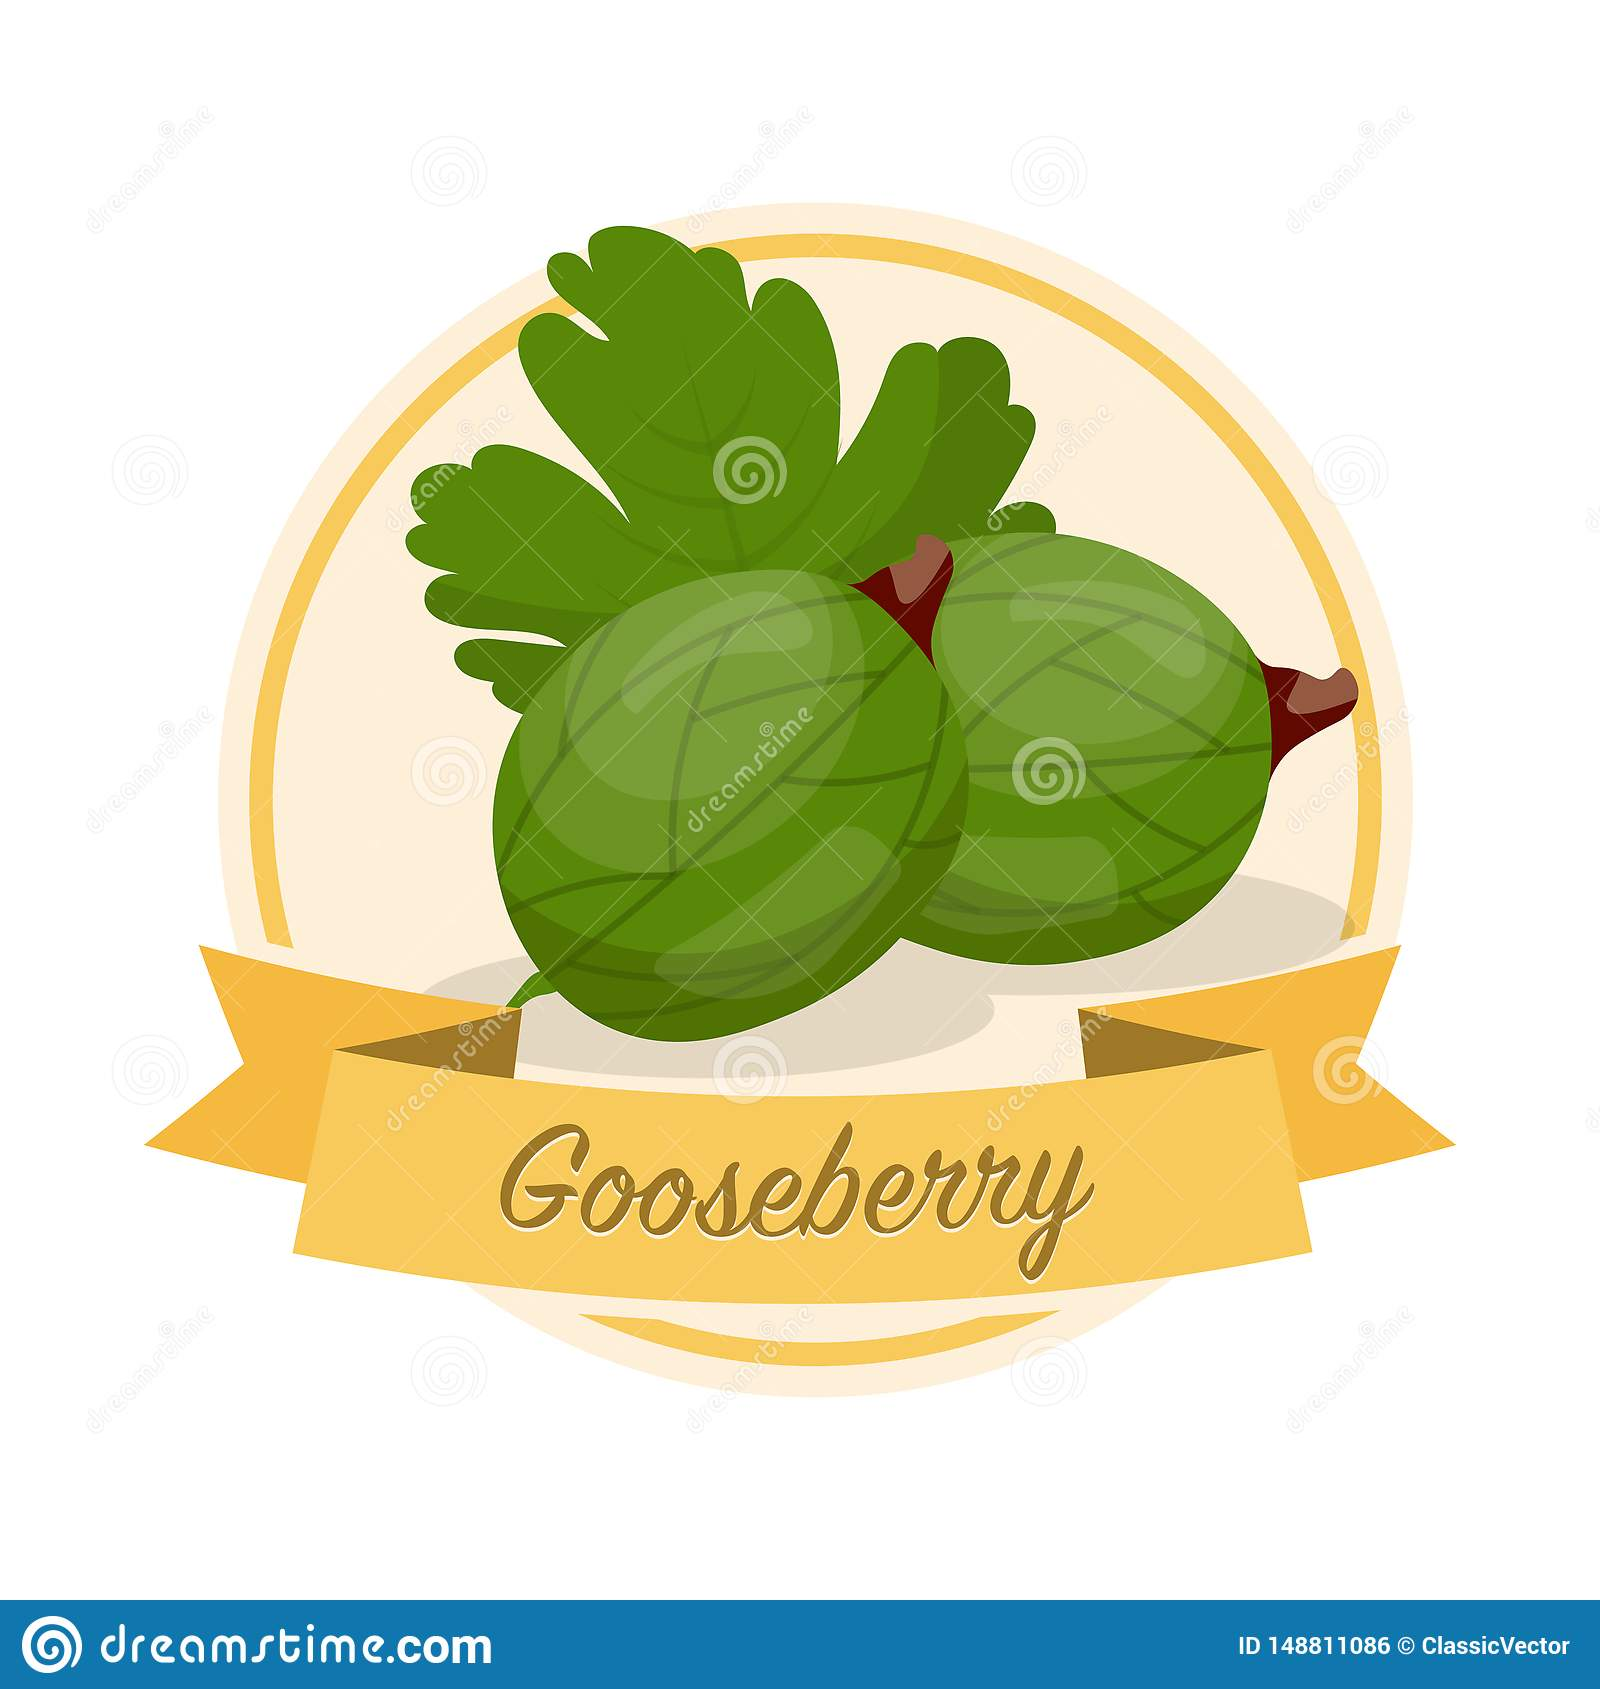 Ripe gooseberries with name vector illustration